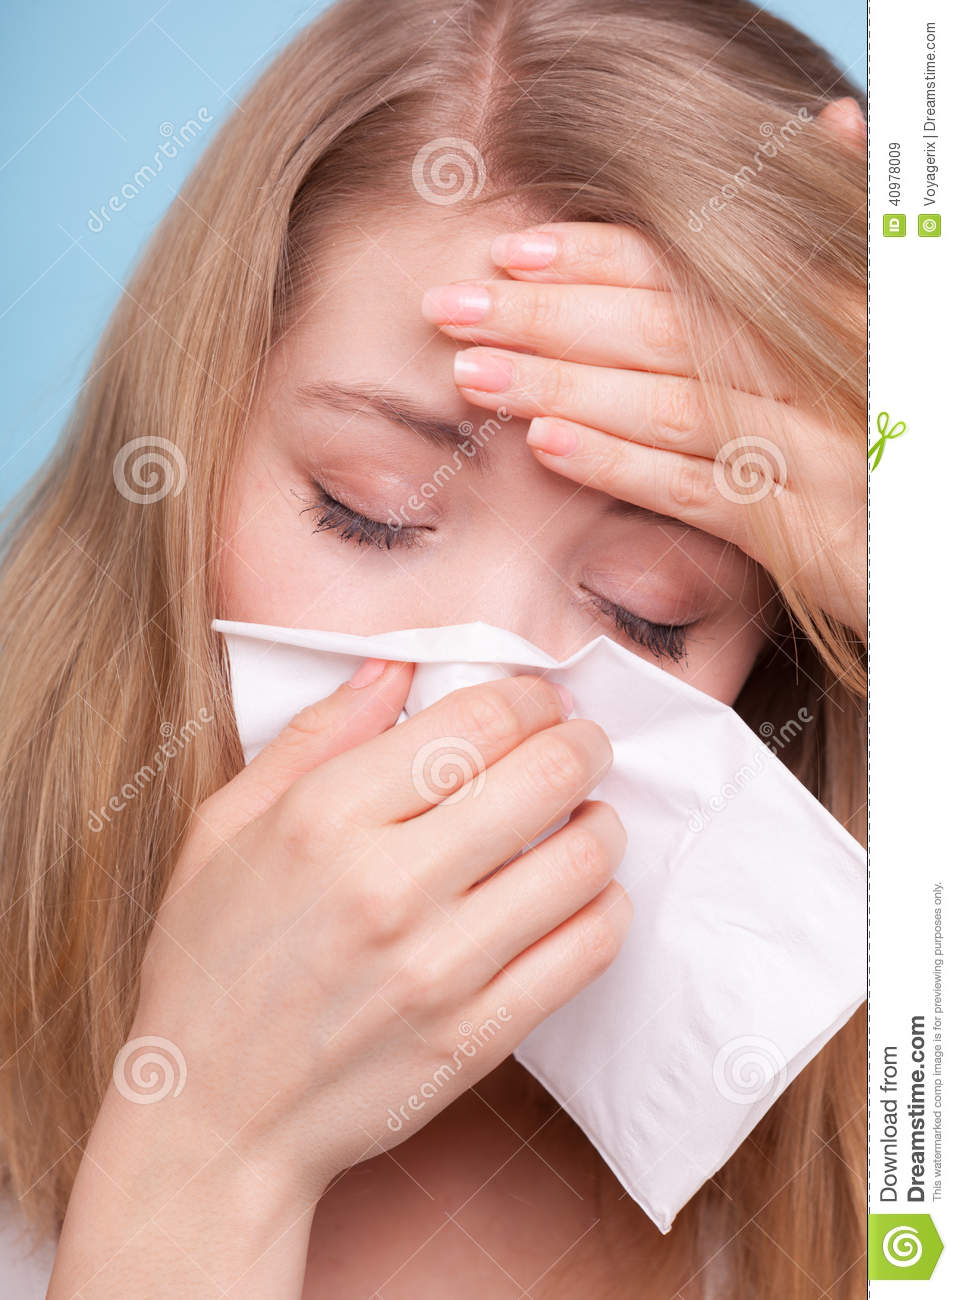 Flu Fever Sick Girl Sneezing In Tissue Health